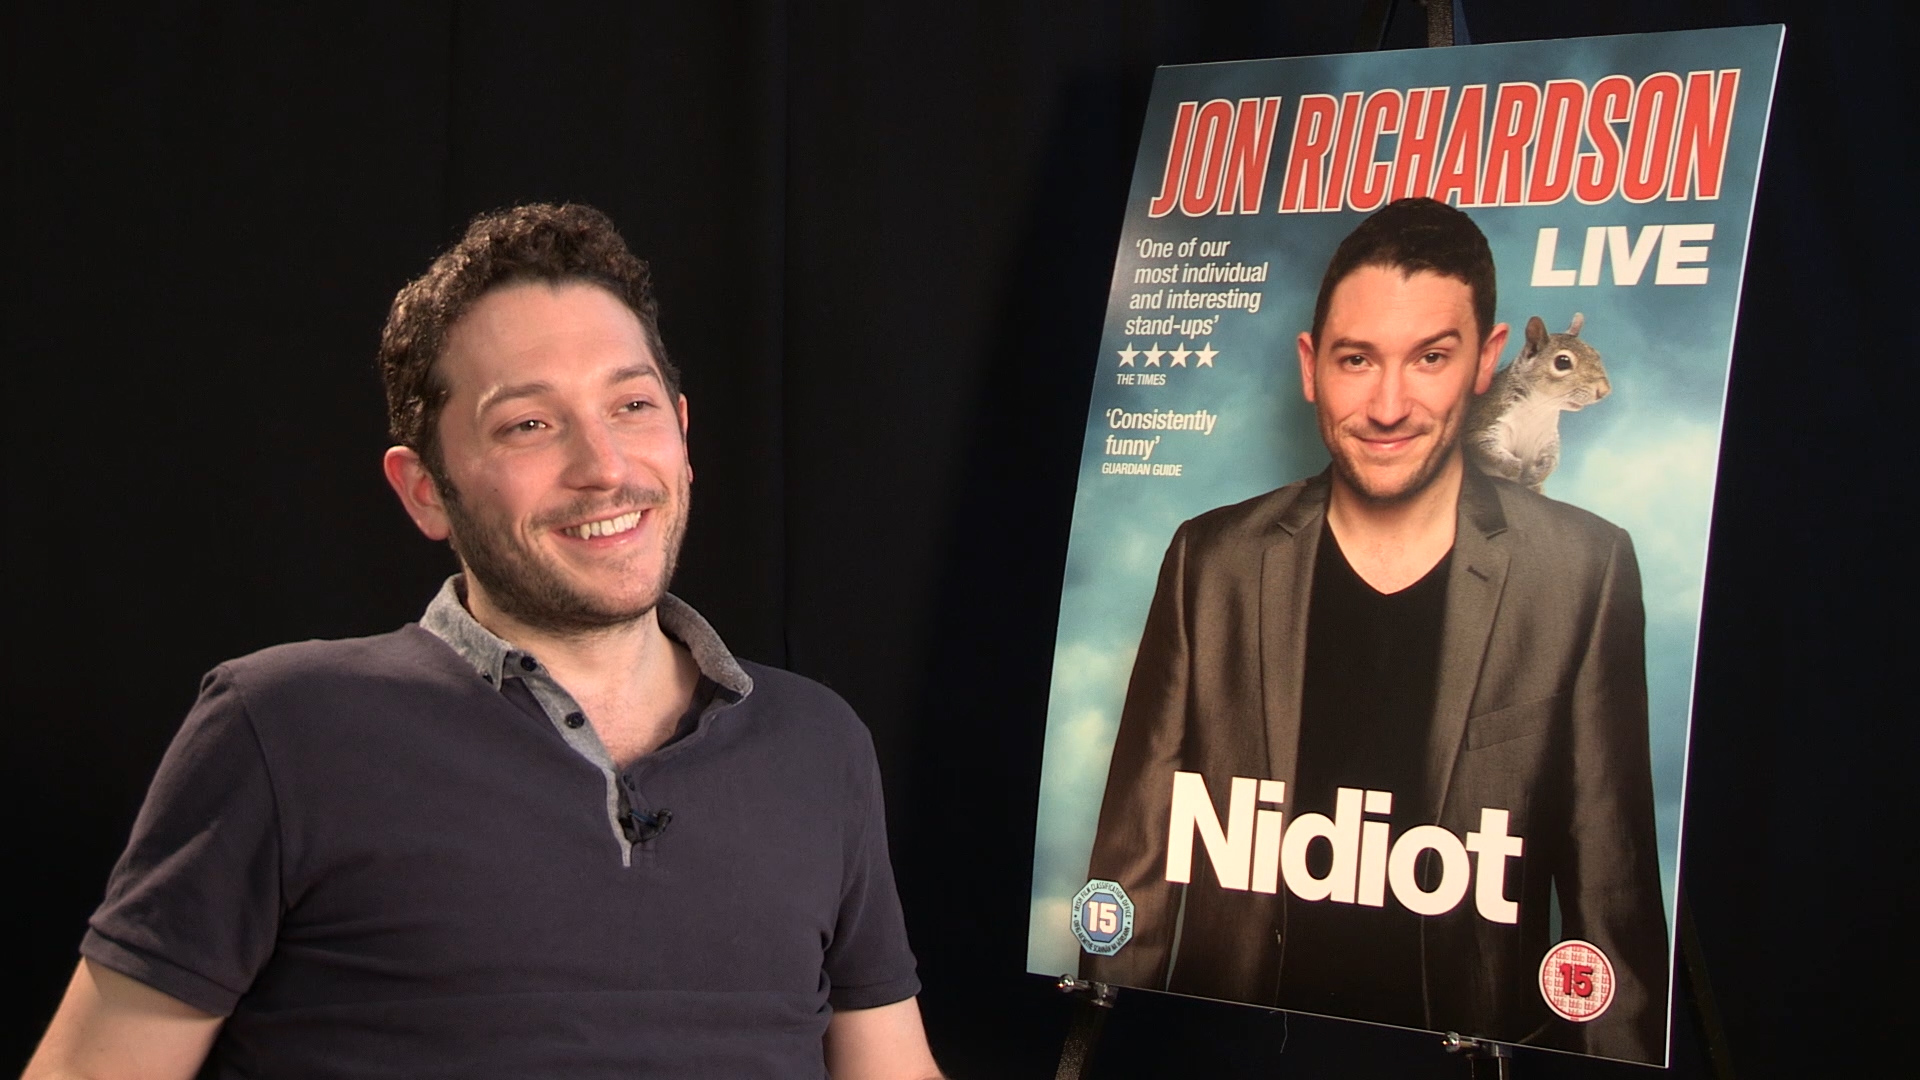 Comedian jon richardson wedding